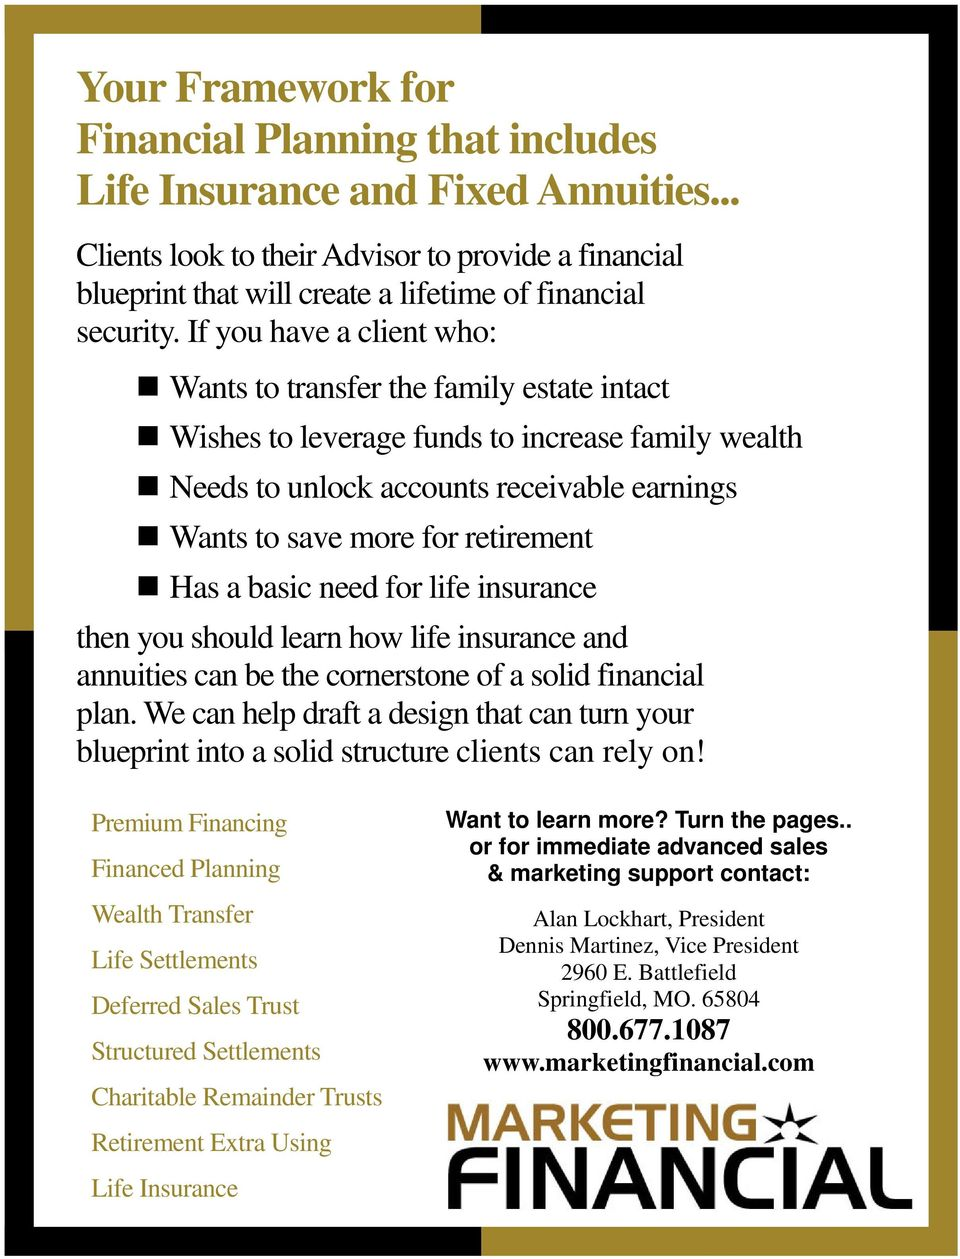 If you have a client who: Wants to transfer the family estate intact Wishes to leverage funds to increase family wealth Needs to unlock accounts receivable earnings Wants to save more for retirement